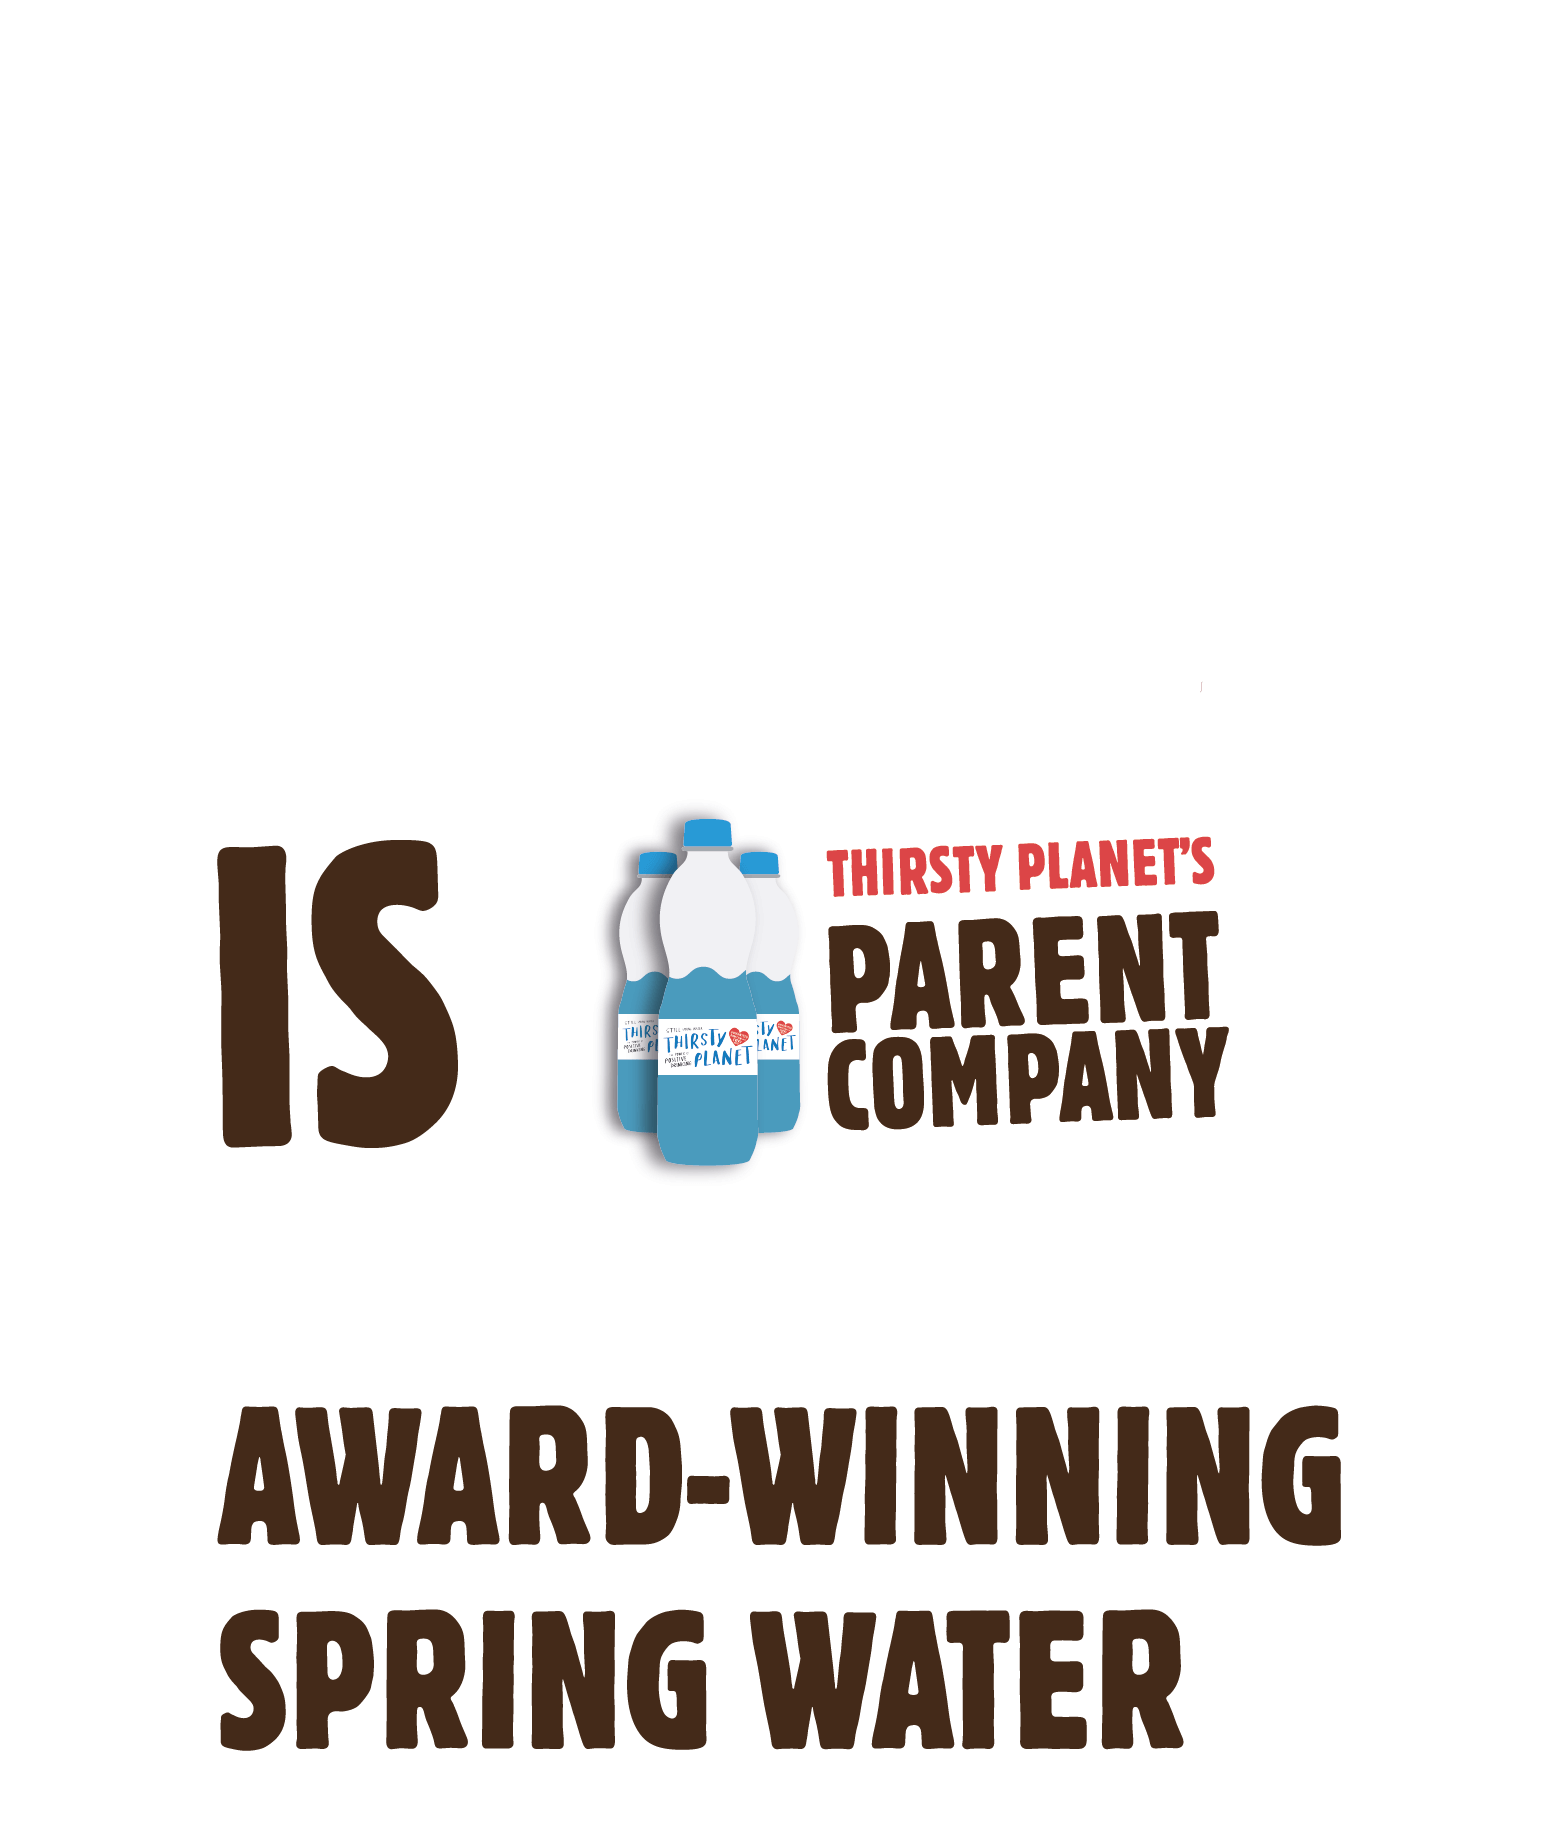 Harrogate Spring Water is Thirsty Planet's parent company. Award-winning spring water.